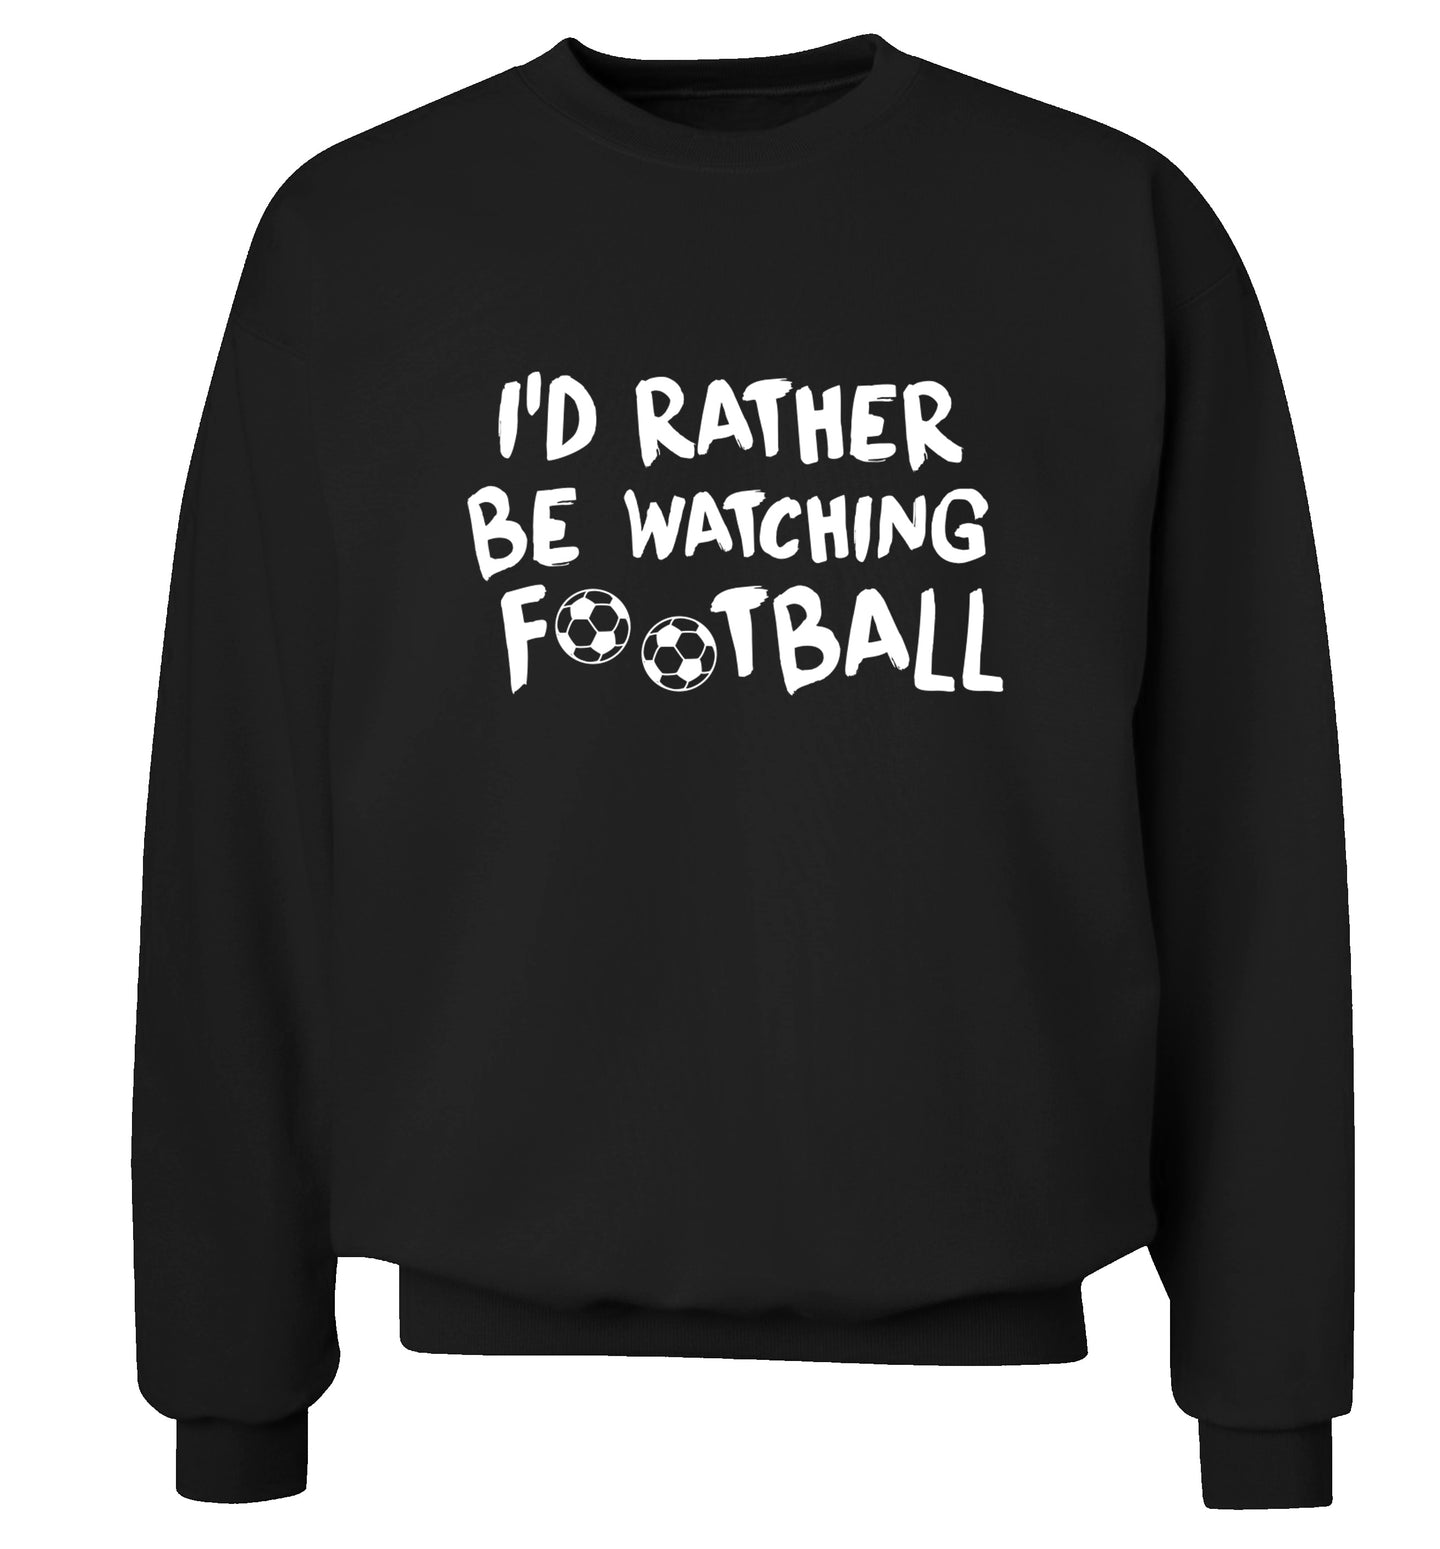 I'd rather be watching football Adult's unisexblack Sweater 2XL